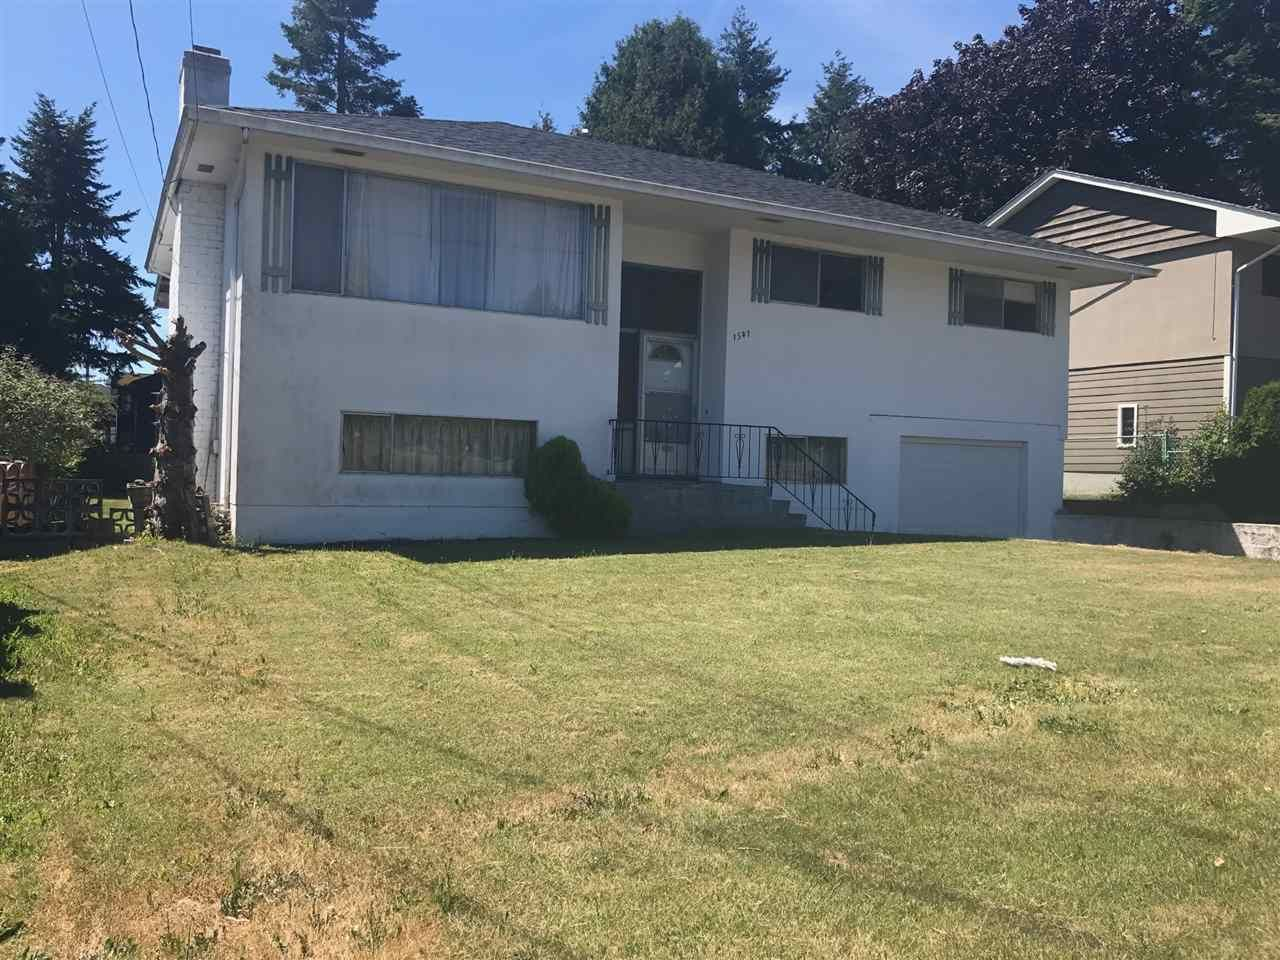 Main Photo: 1541 CHESTNUT Street: White Rock House for sale (South Surrey White Rock)  : MLS®# R2185573